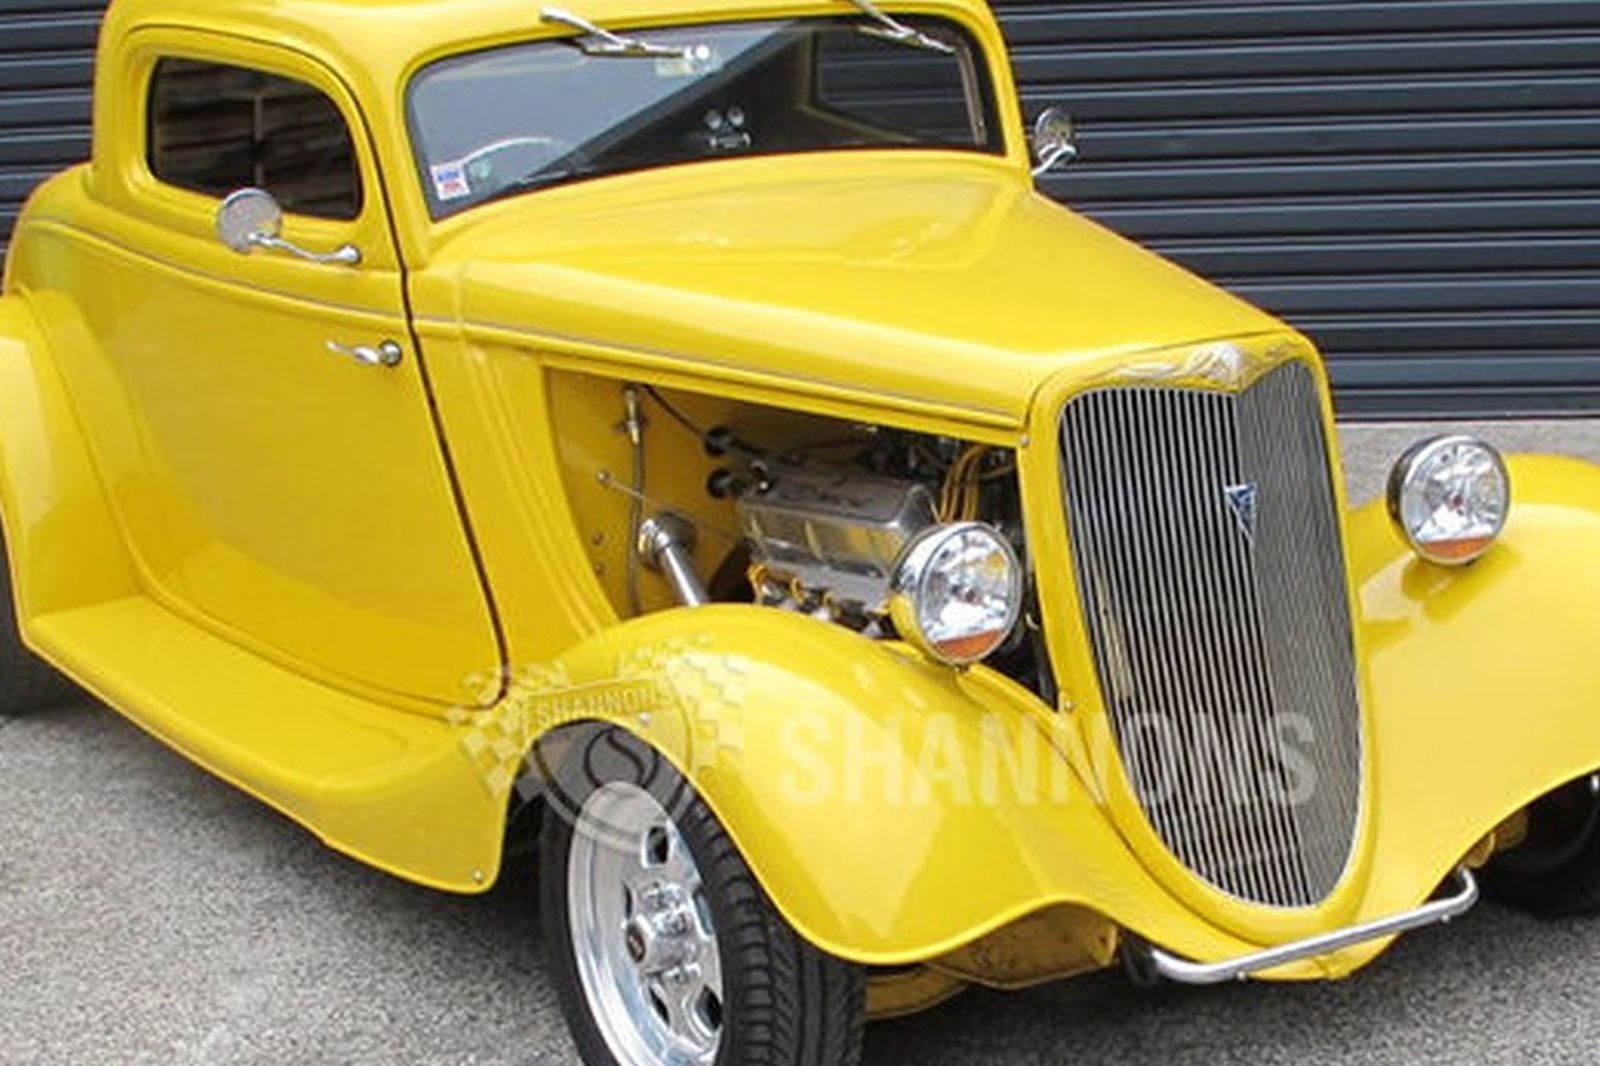 sold ford 39 hot rod 39 coupe rhd auctions lot 14 shannons. Black Bedroom Furniture Sets. Home Design Ideas